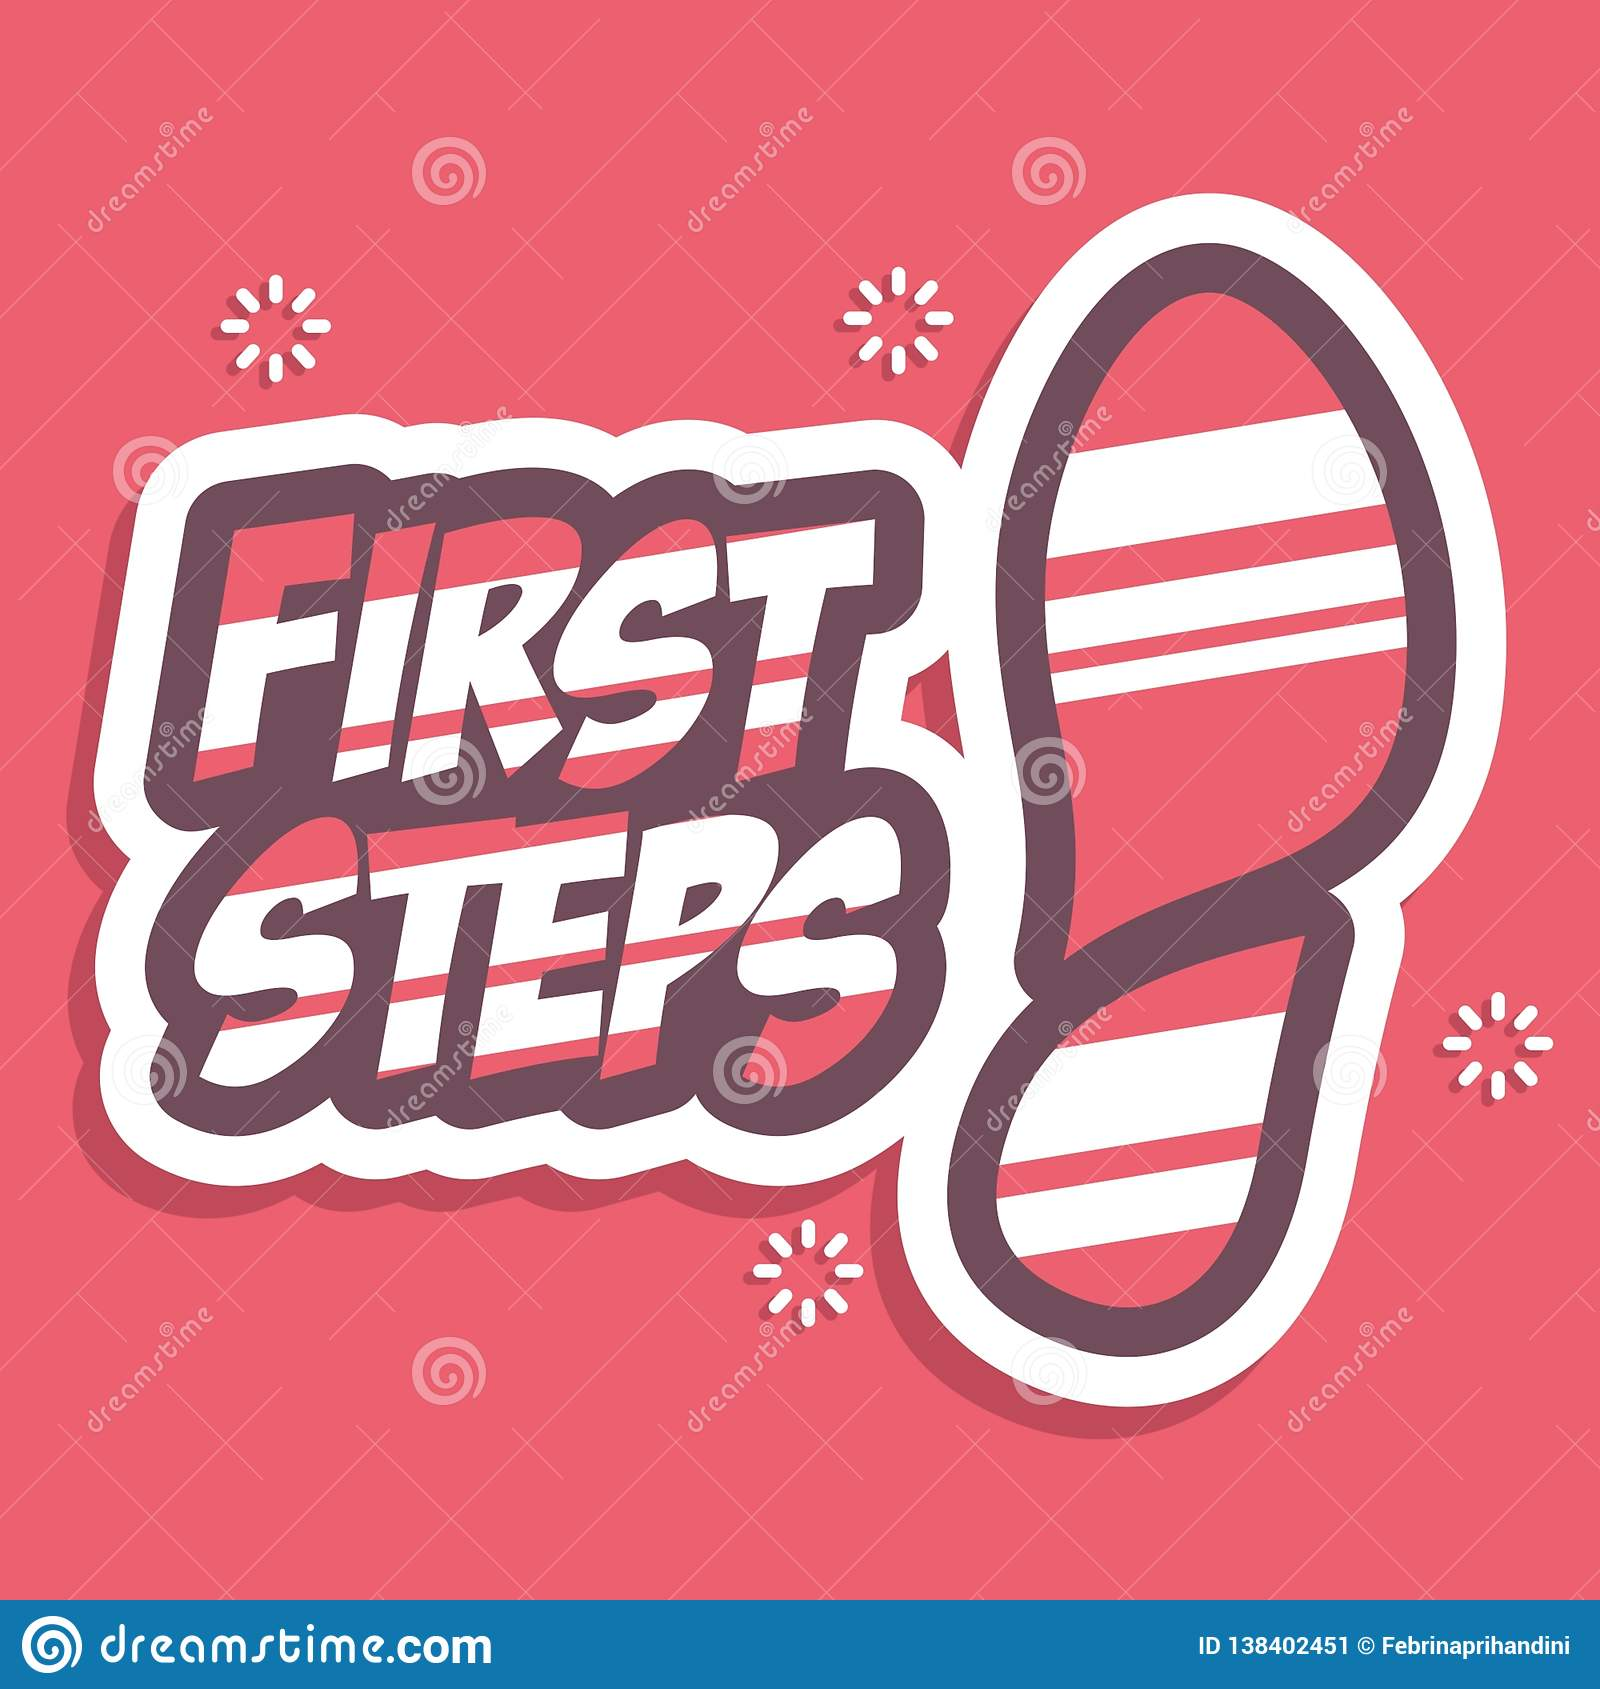 First Steps. Lettering typography poster motivational quotes